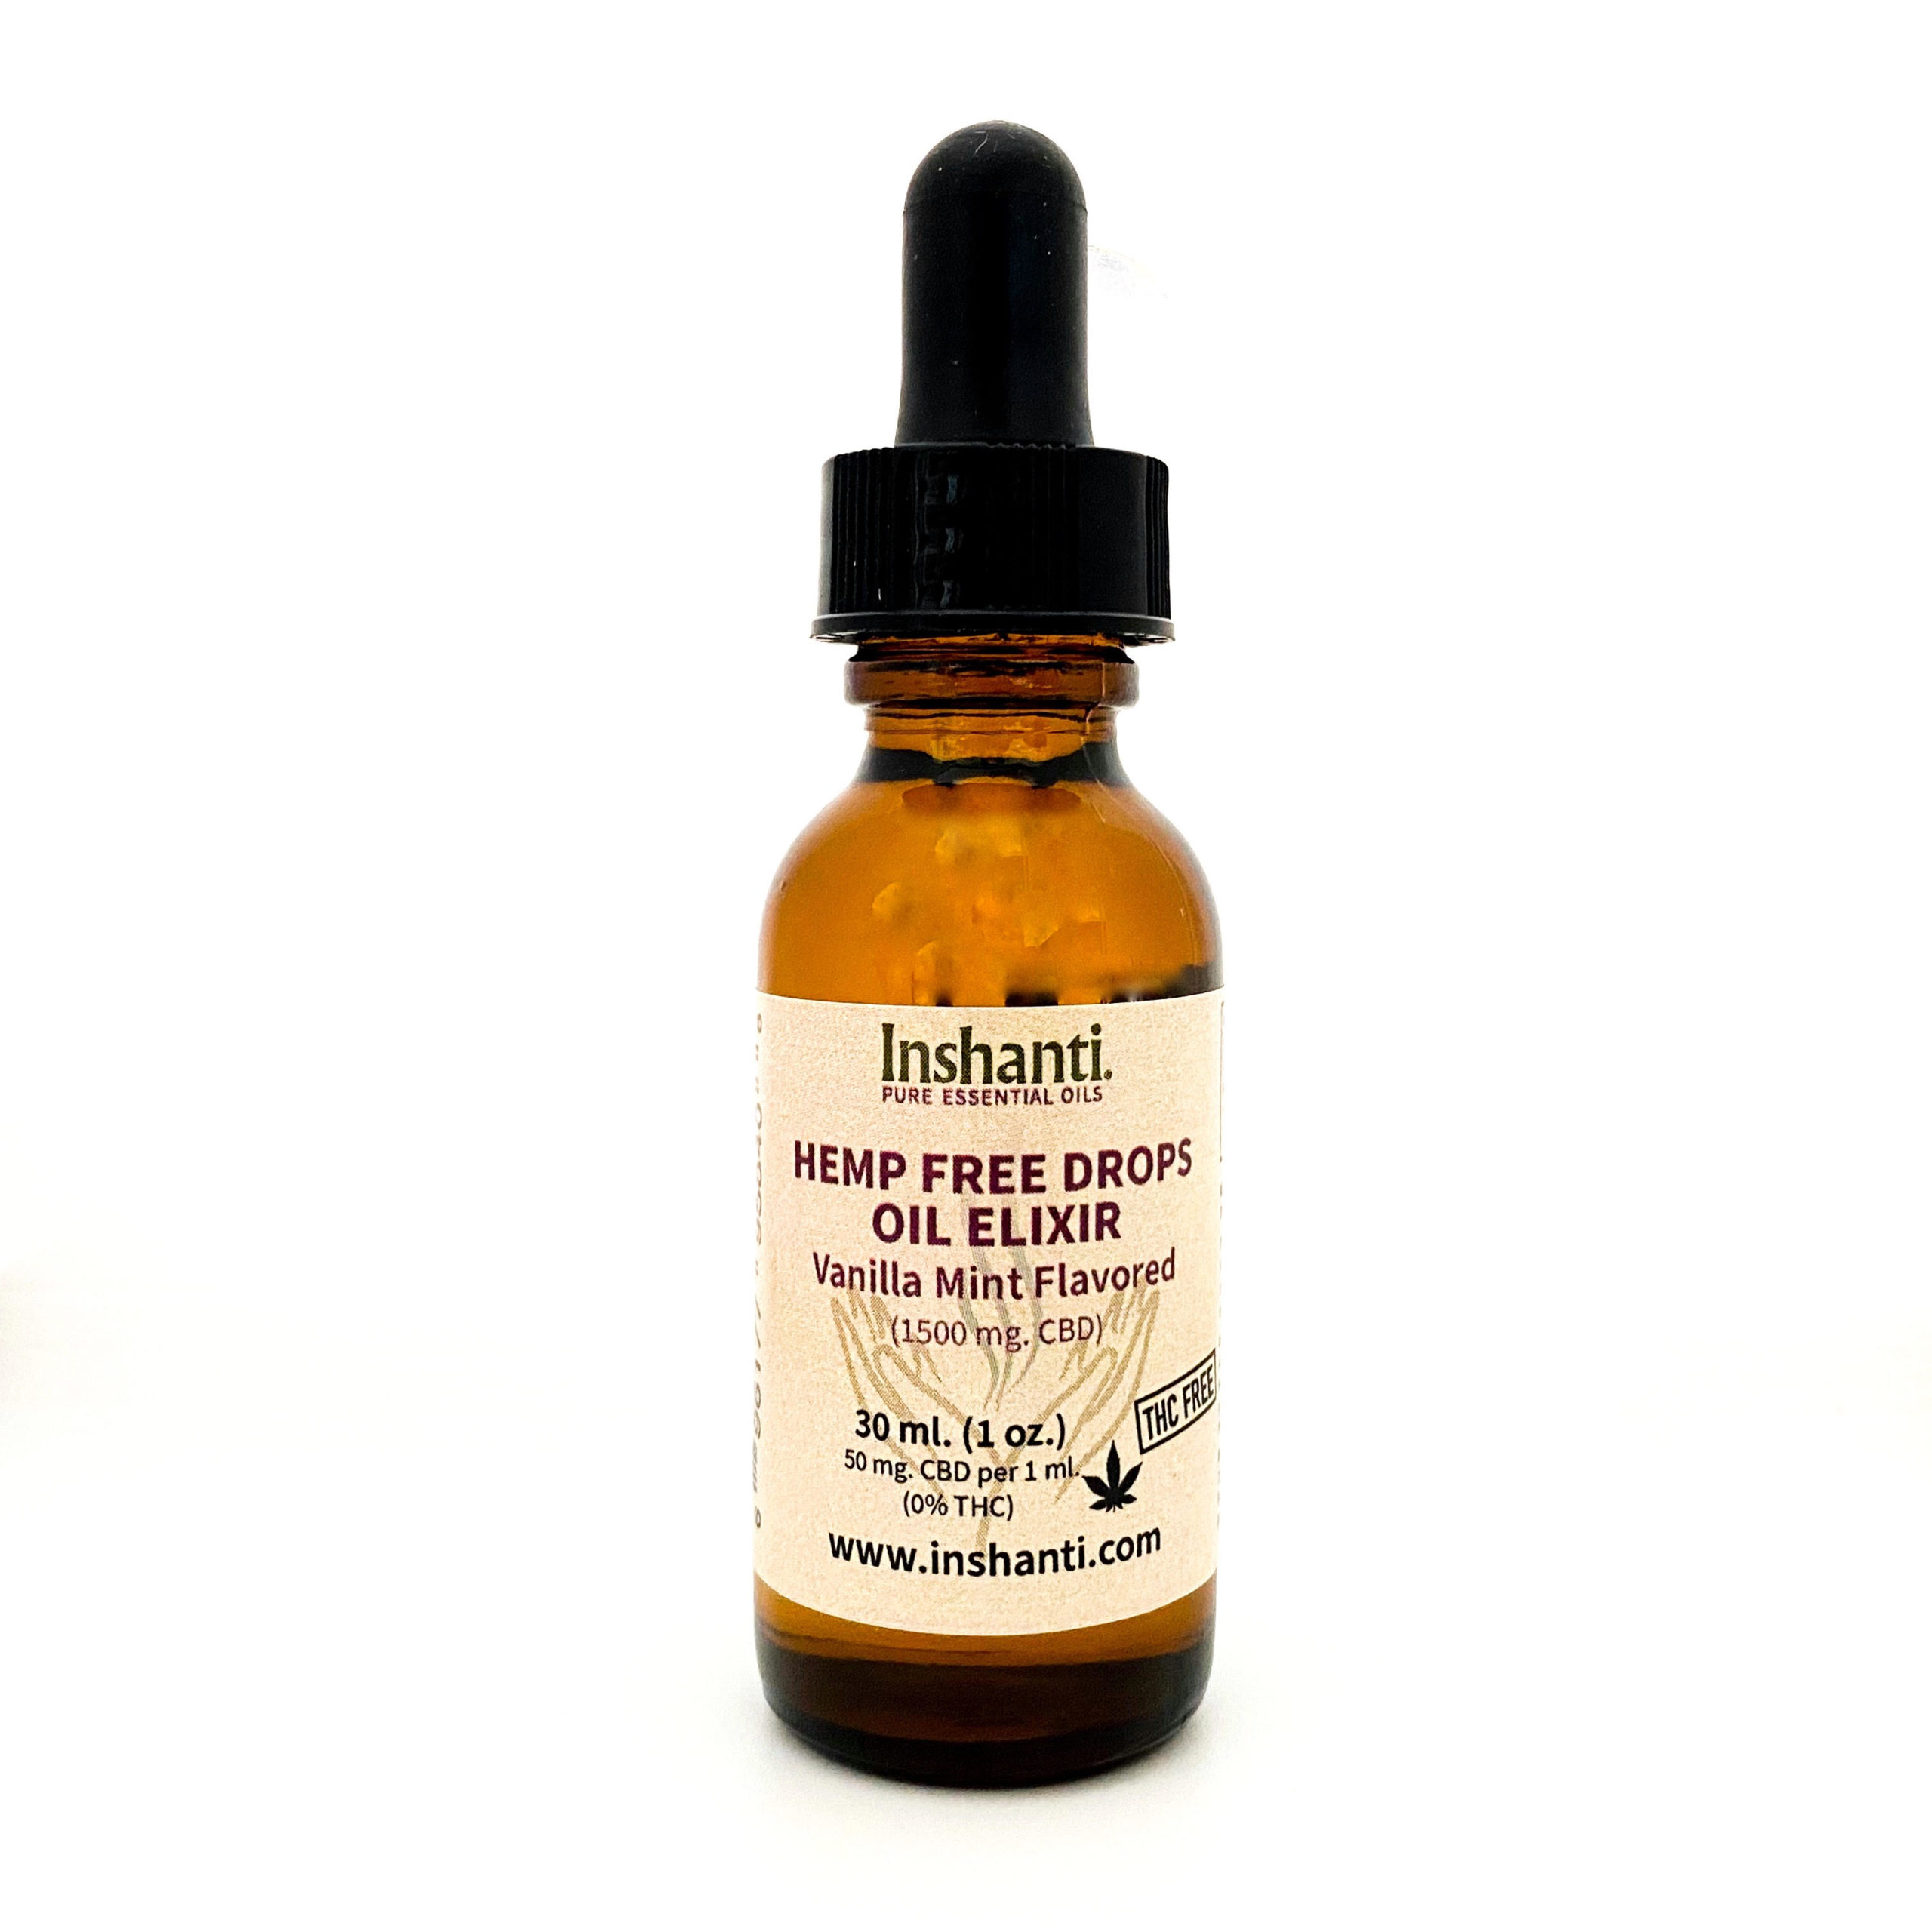 Hemp Free Oil Elixir